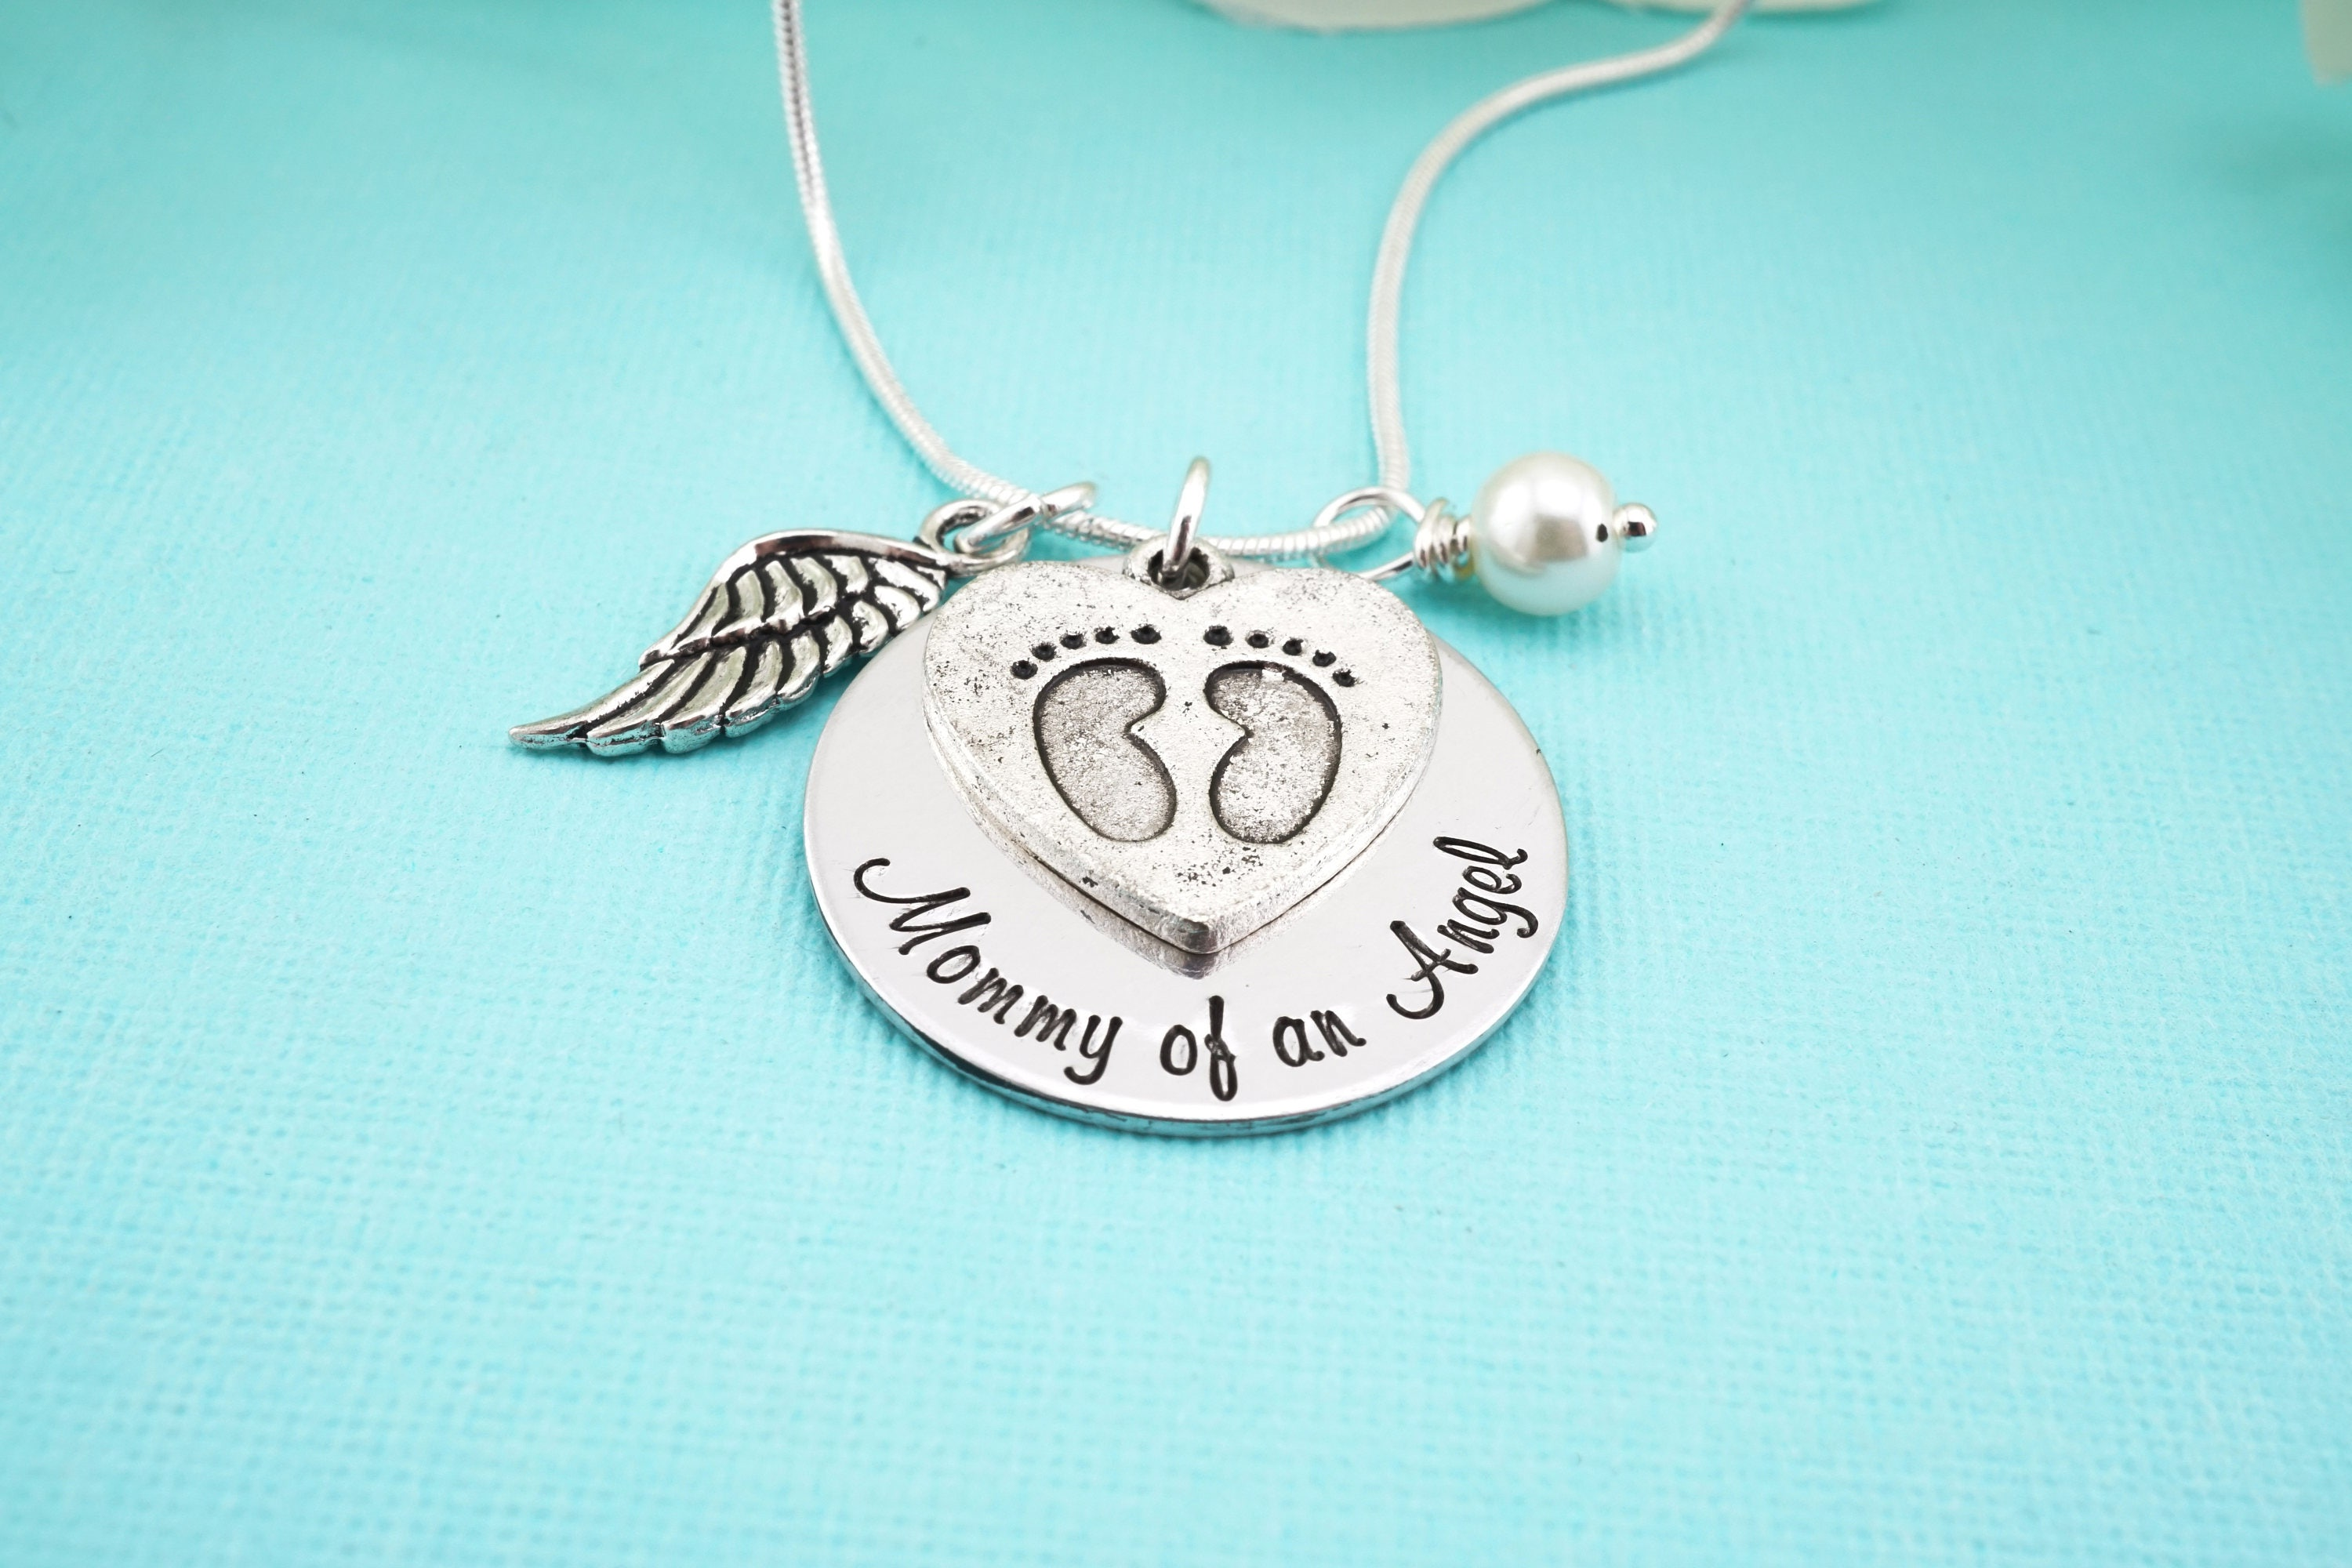 miscarriage remembrance jewellery baby necklace loss sentiments bean sids aag memorial